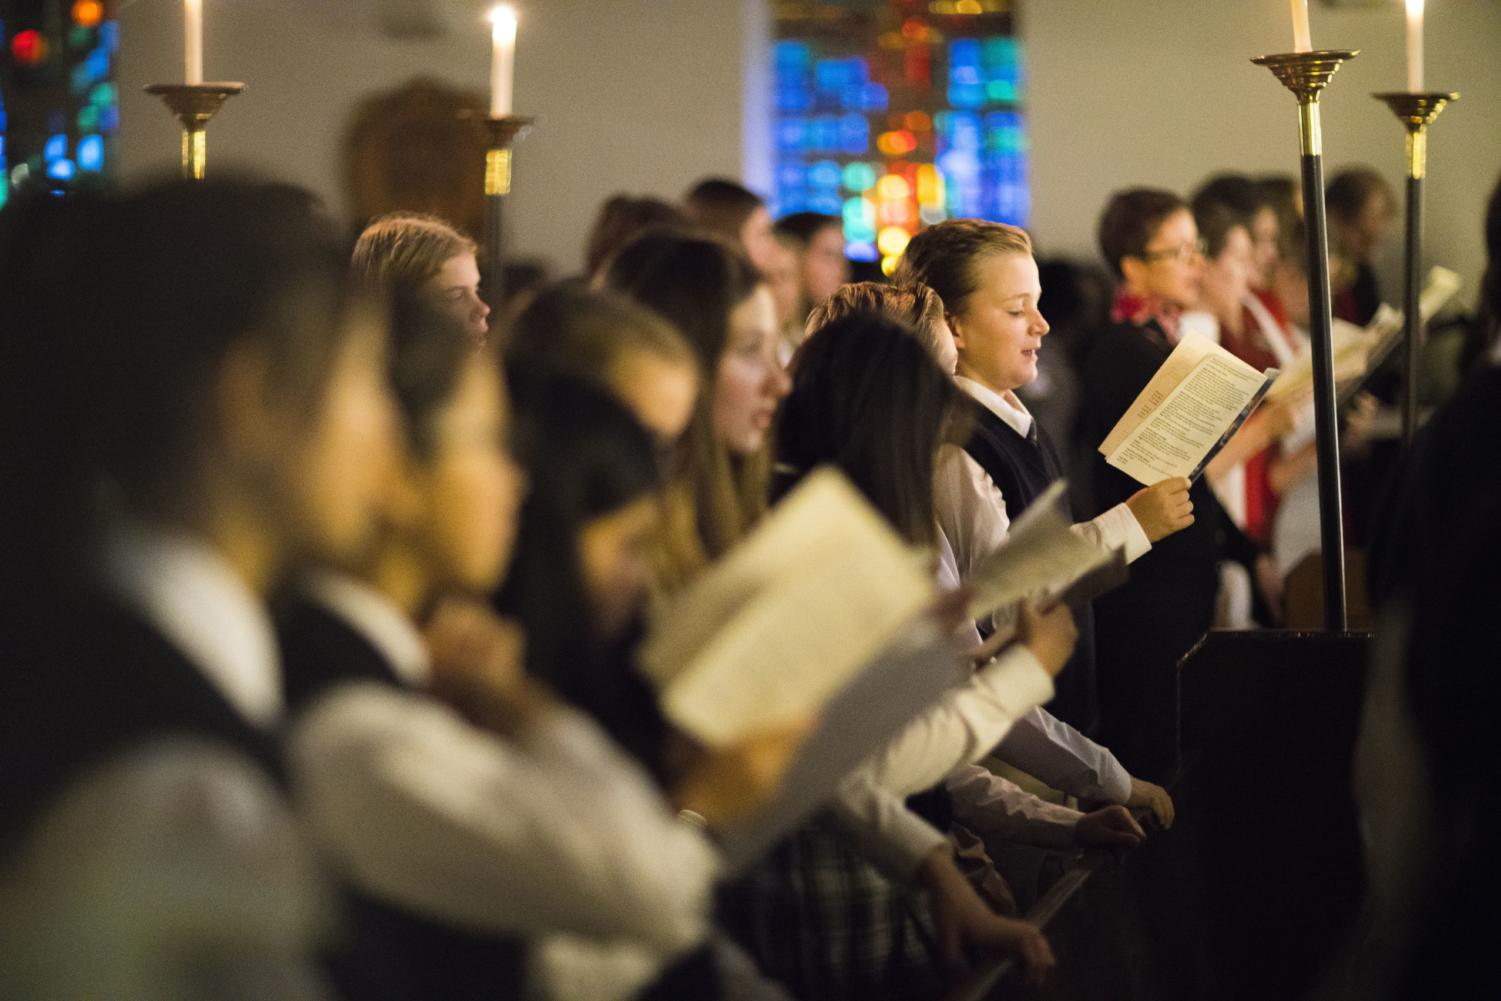 Lessons and Carols of 2018, one of the few events in which the Chapel is used for a religious celebration.